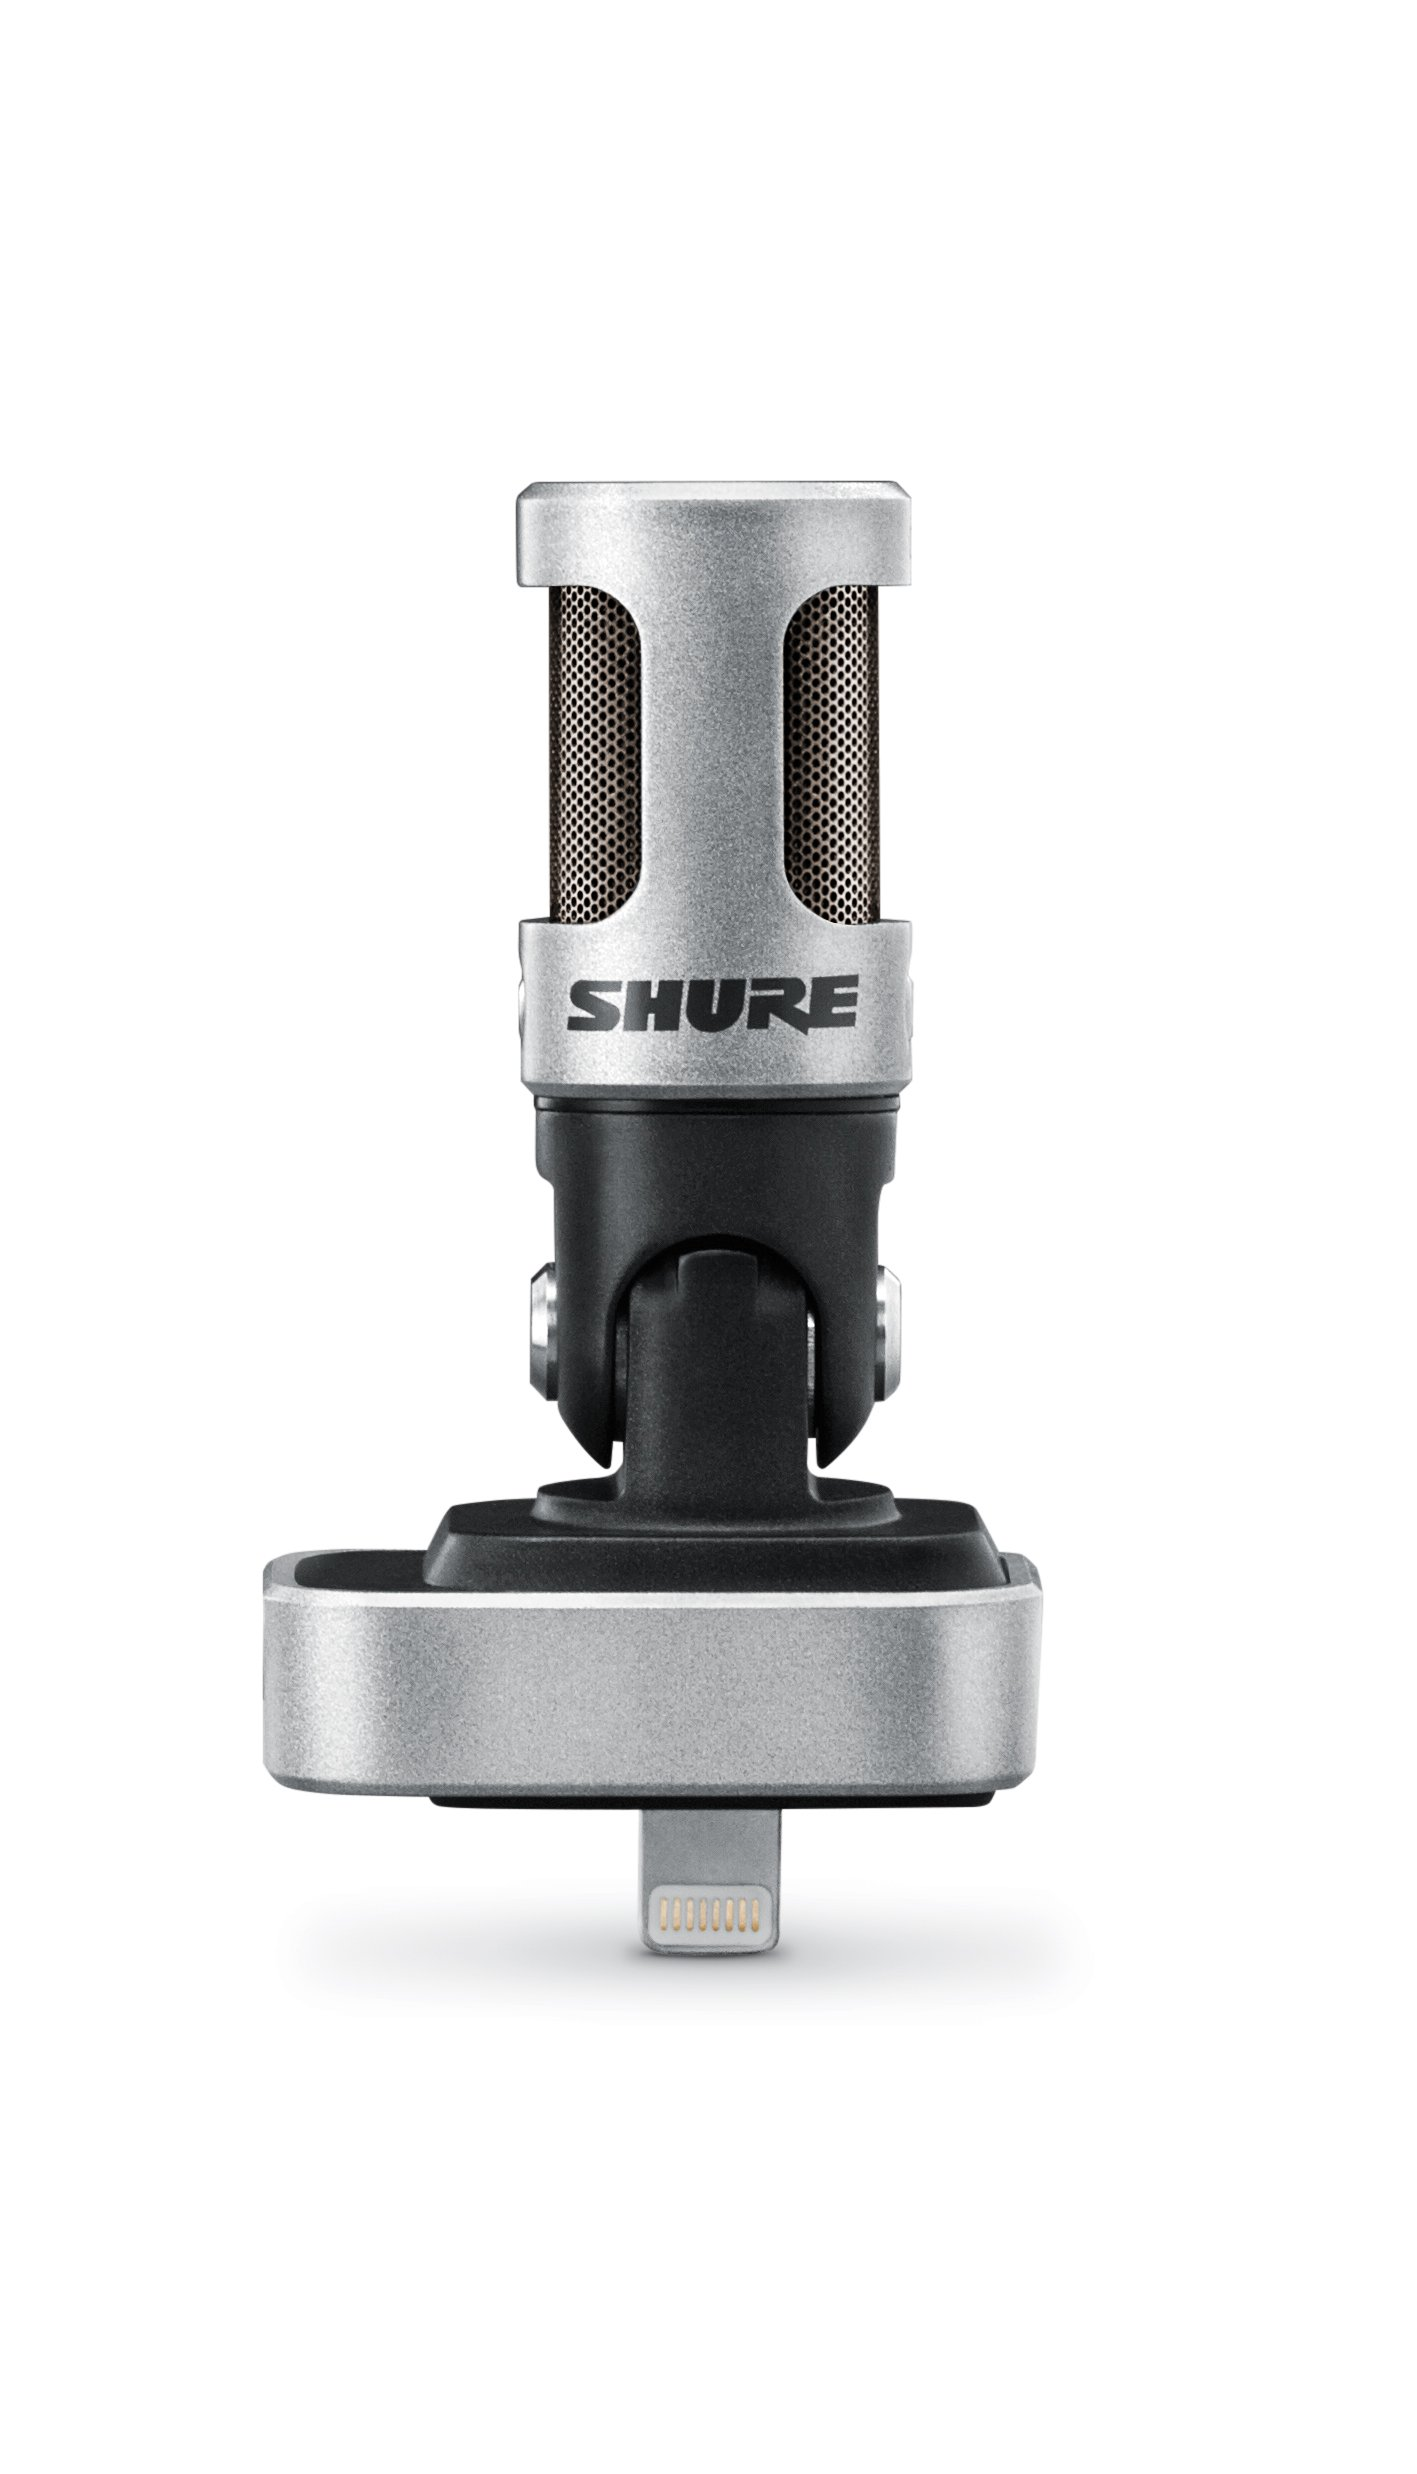 Shure MV88 iOS Digital Stereo Condenser Microphone by Shure